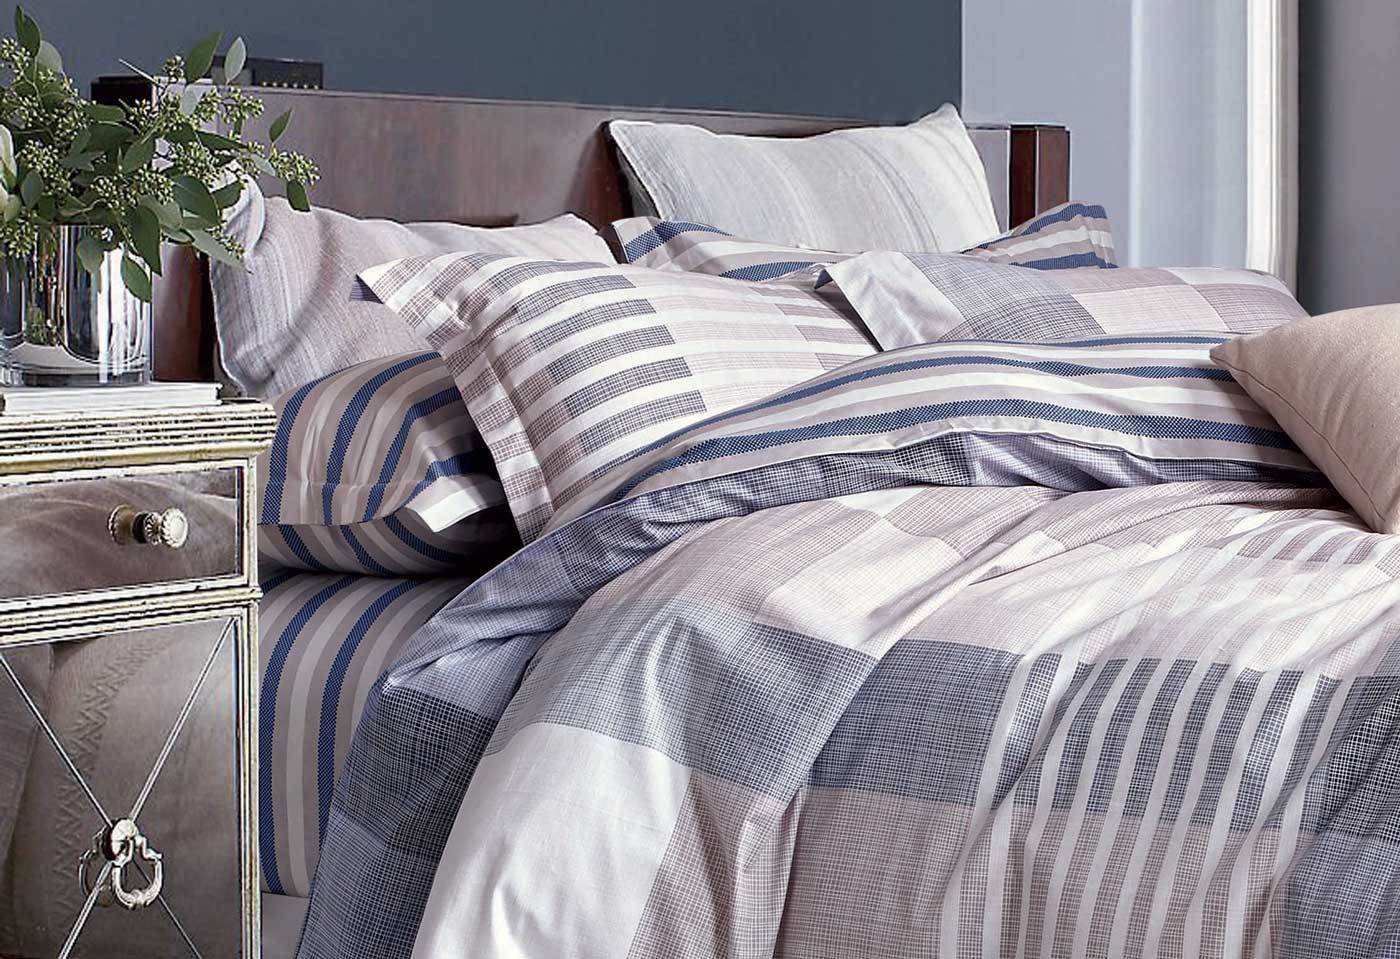 100% Cotton Luxton Rafles quilt cover set / doona cover set